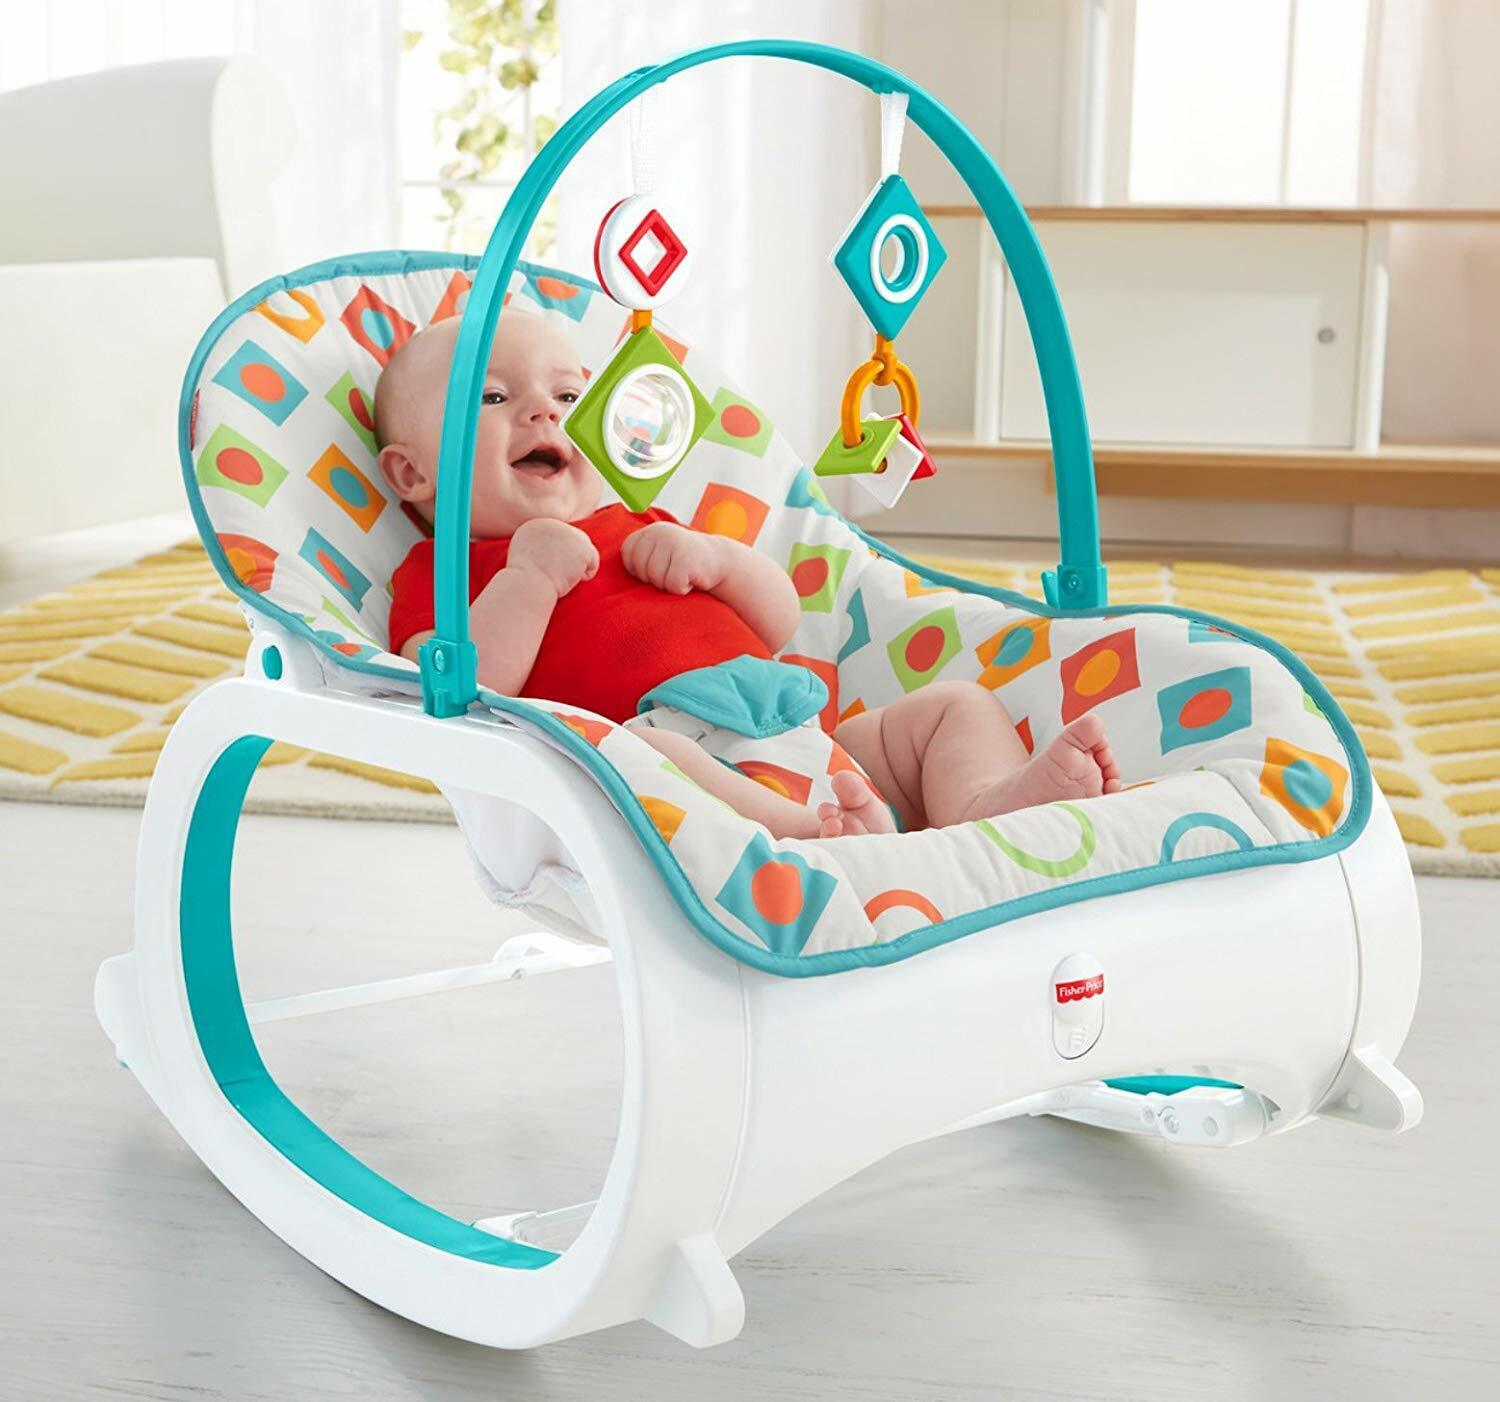 Geo Diamonds Fisher-Price Infant-to-Toddler Rocker